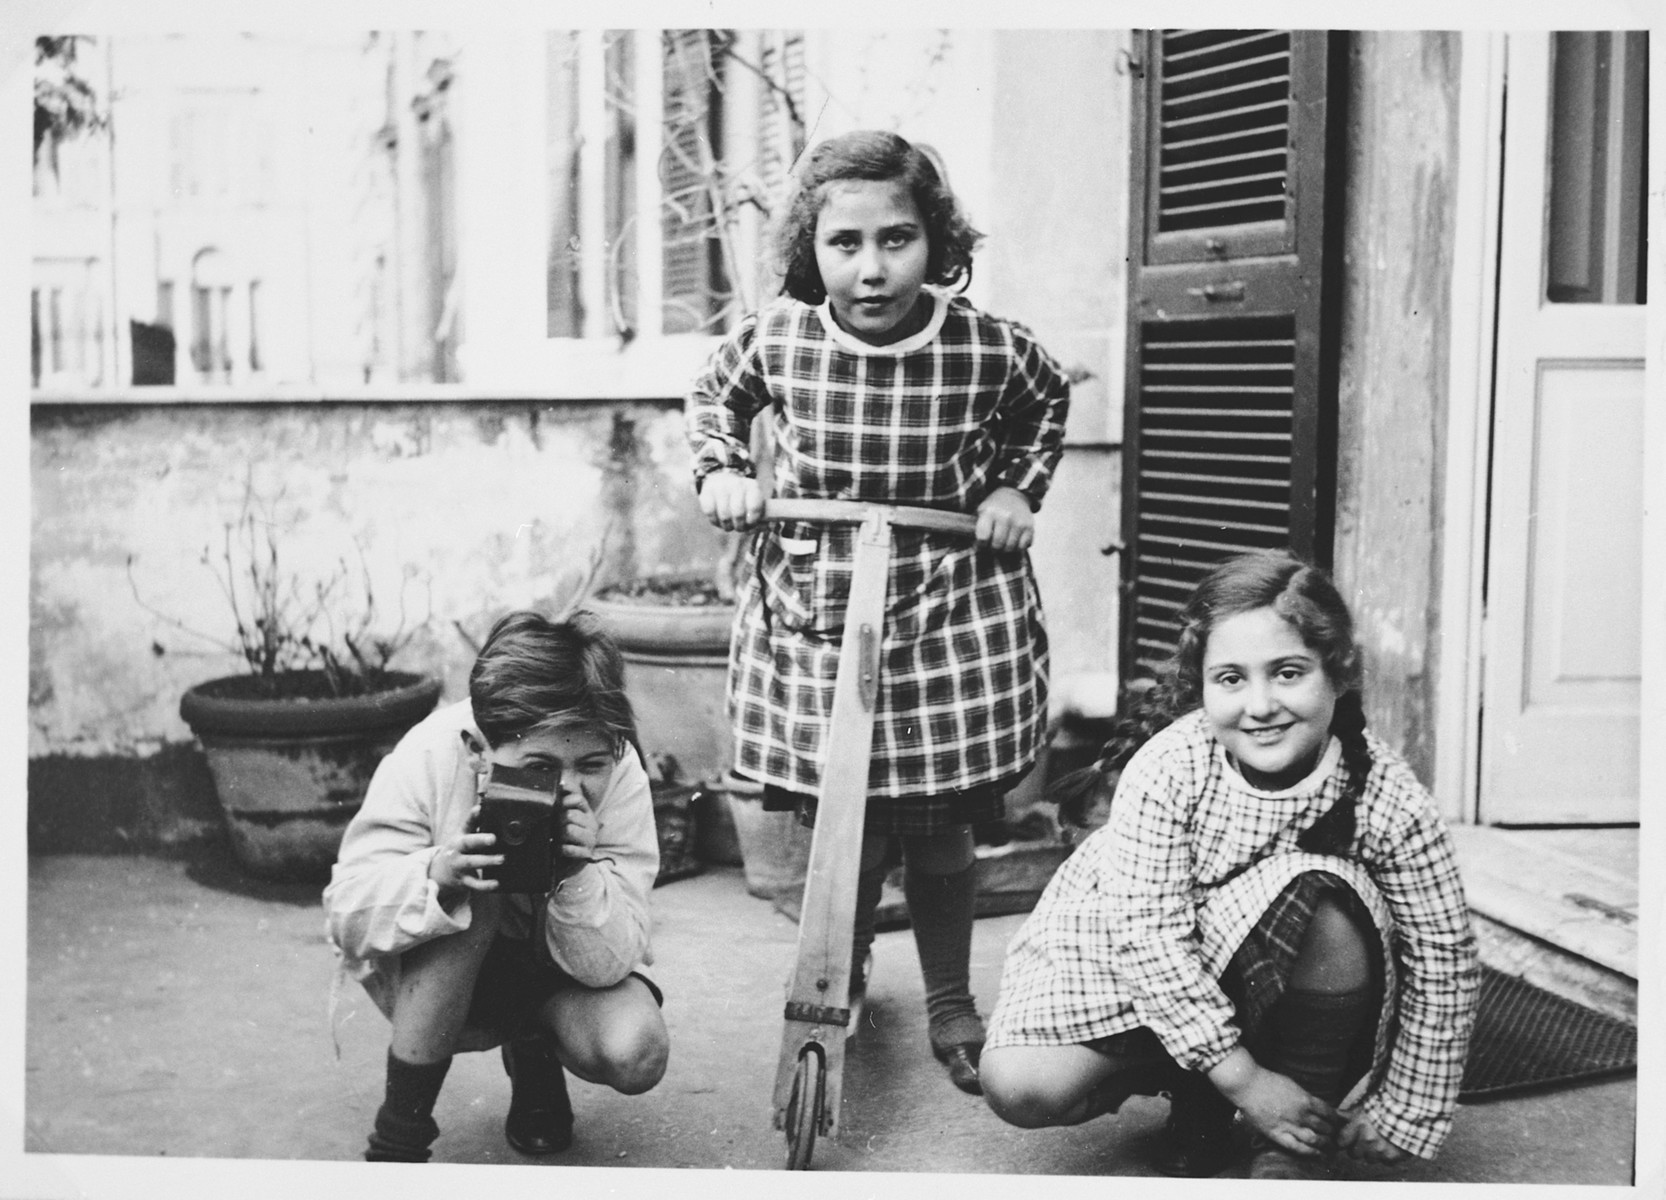 Three Jewish children play in the courtyard of their home.  Pictured are Emanuele Pacifici with his cousins Fausta and Gilda Cassuto.